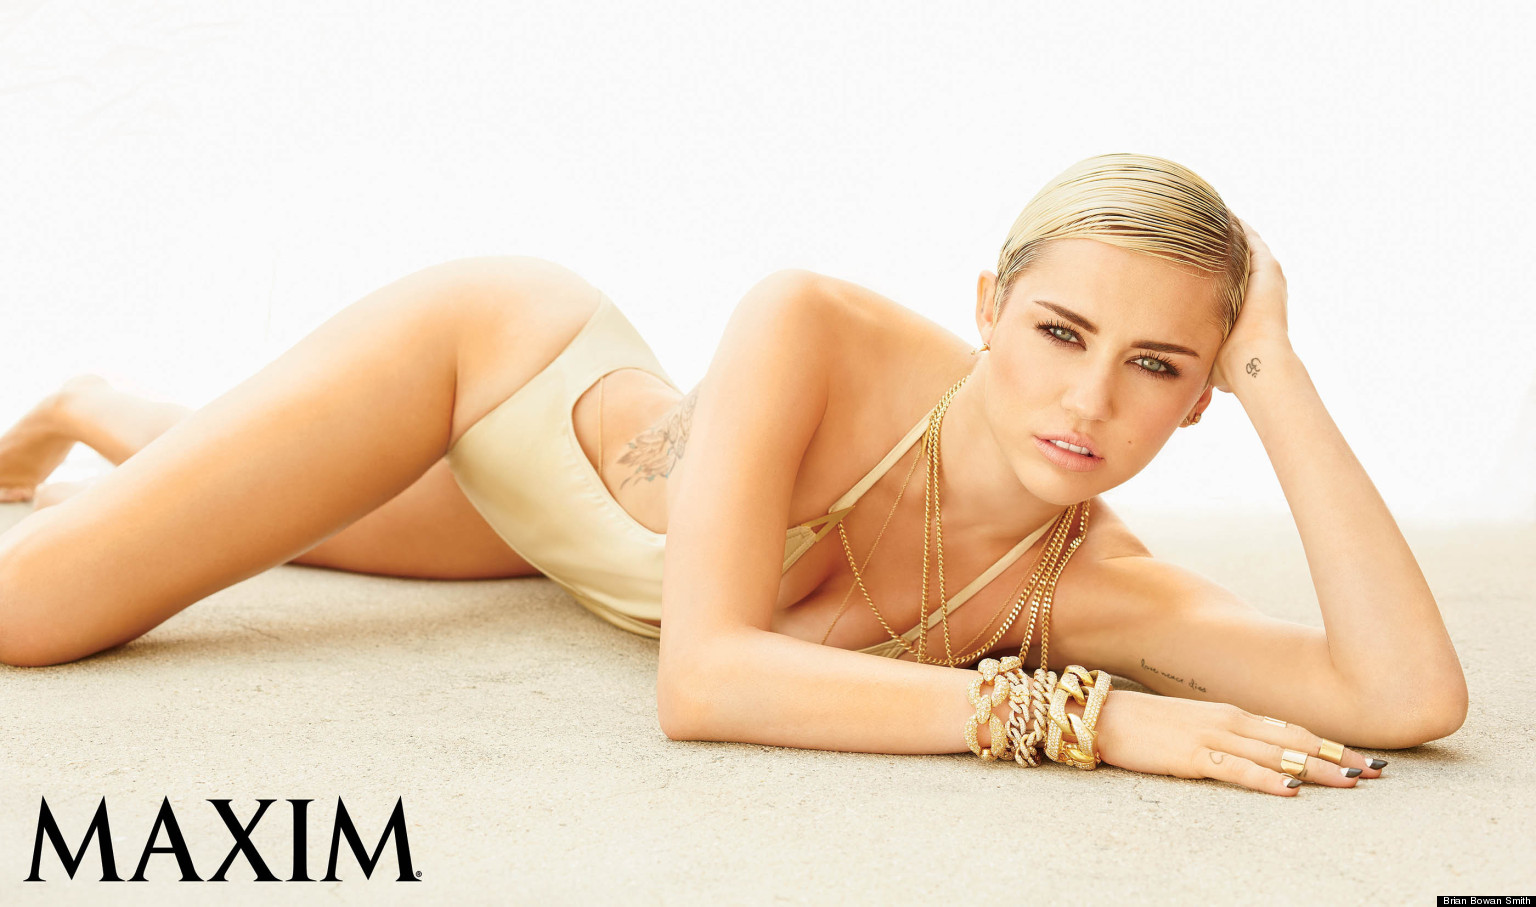 Maxim hot 100 of 2013 revealed miley cyrus tops list selena maxim hot 100 of 2013 revealed miley cyrus tops list selena gomez follows photos huffpost voltagebd Images